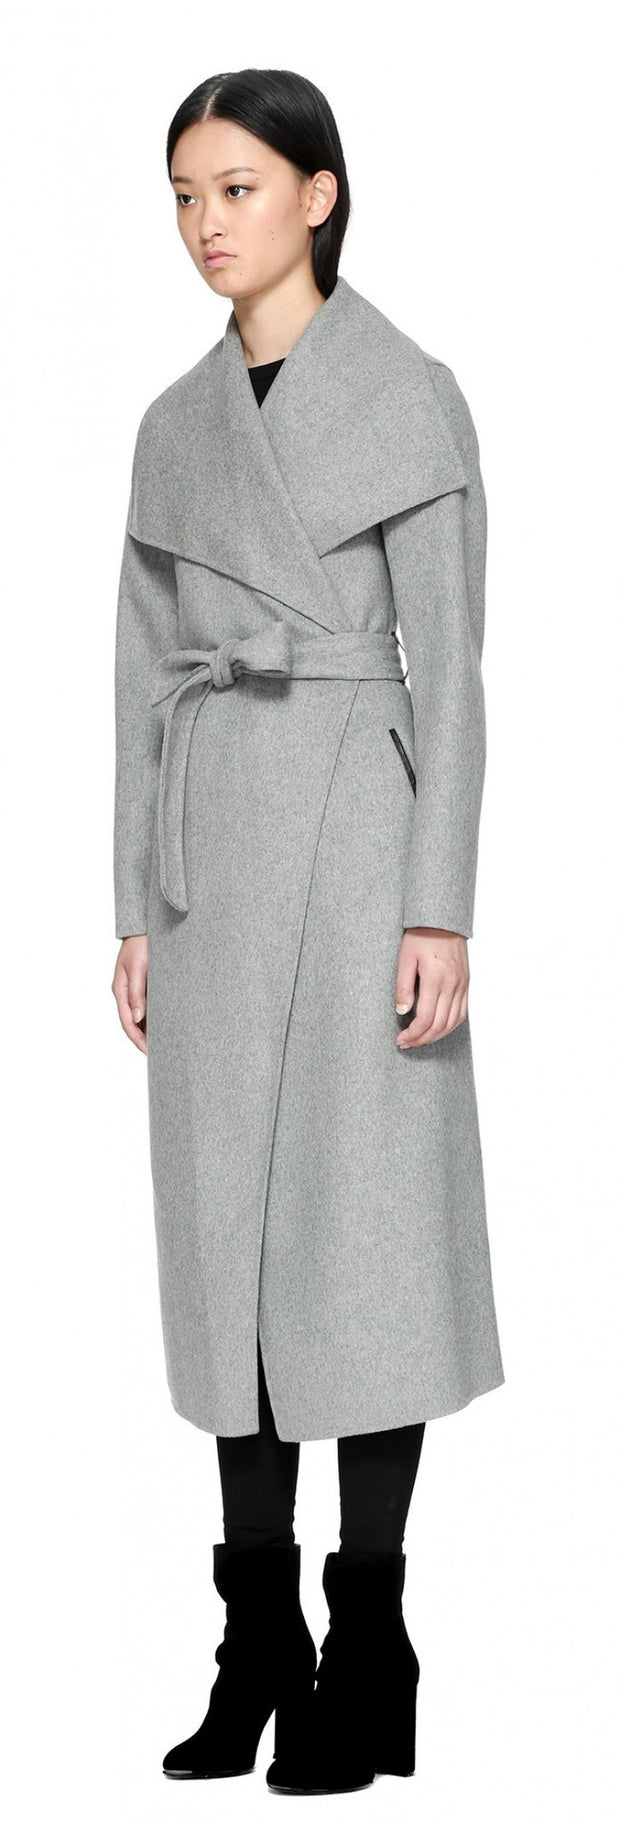 Mackage Mackage- Mai Long Coat + belted waist Light Grey at Blond Genius - 3